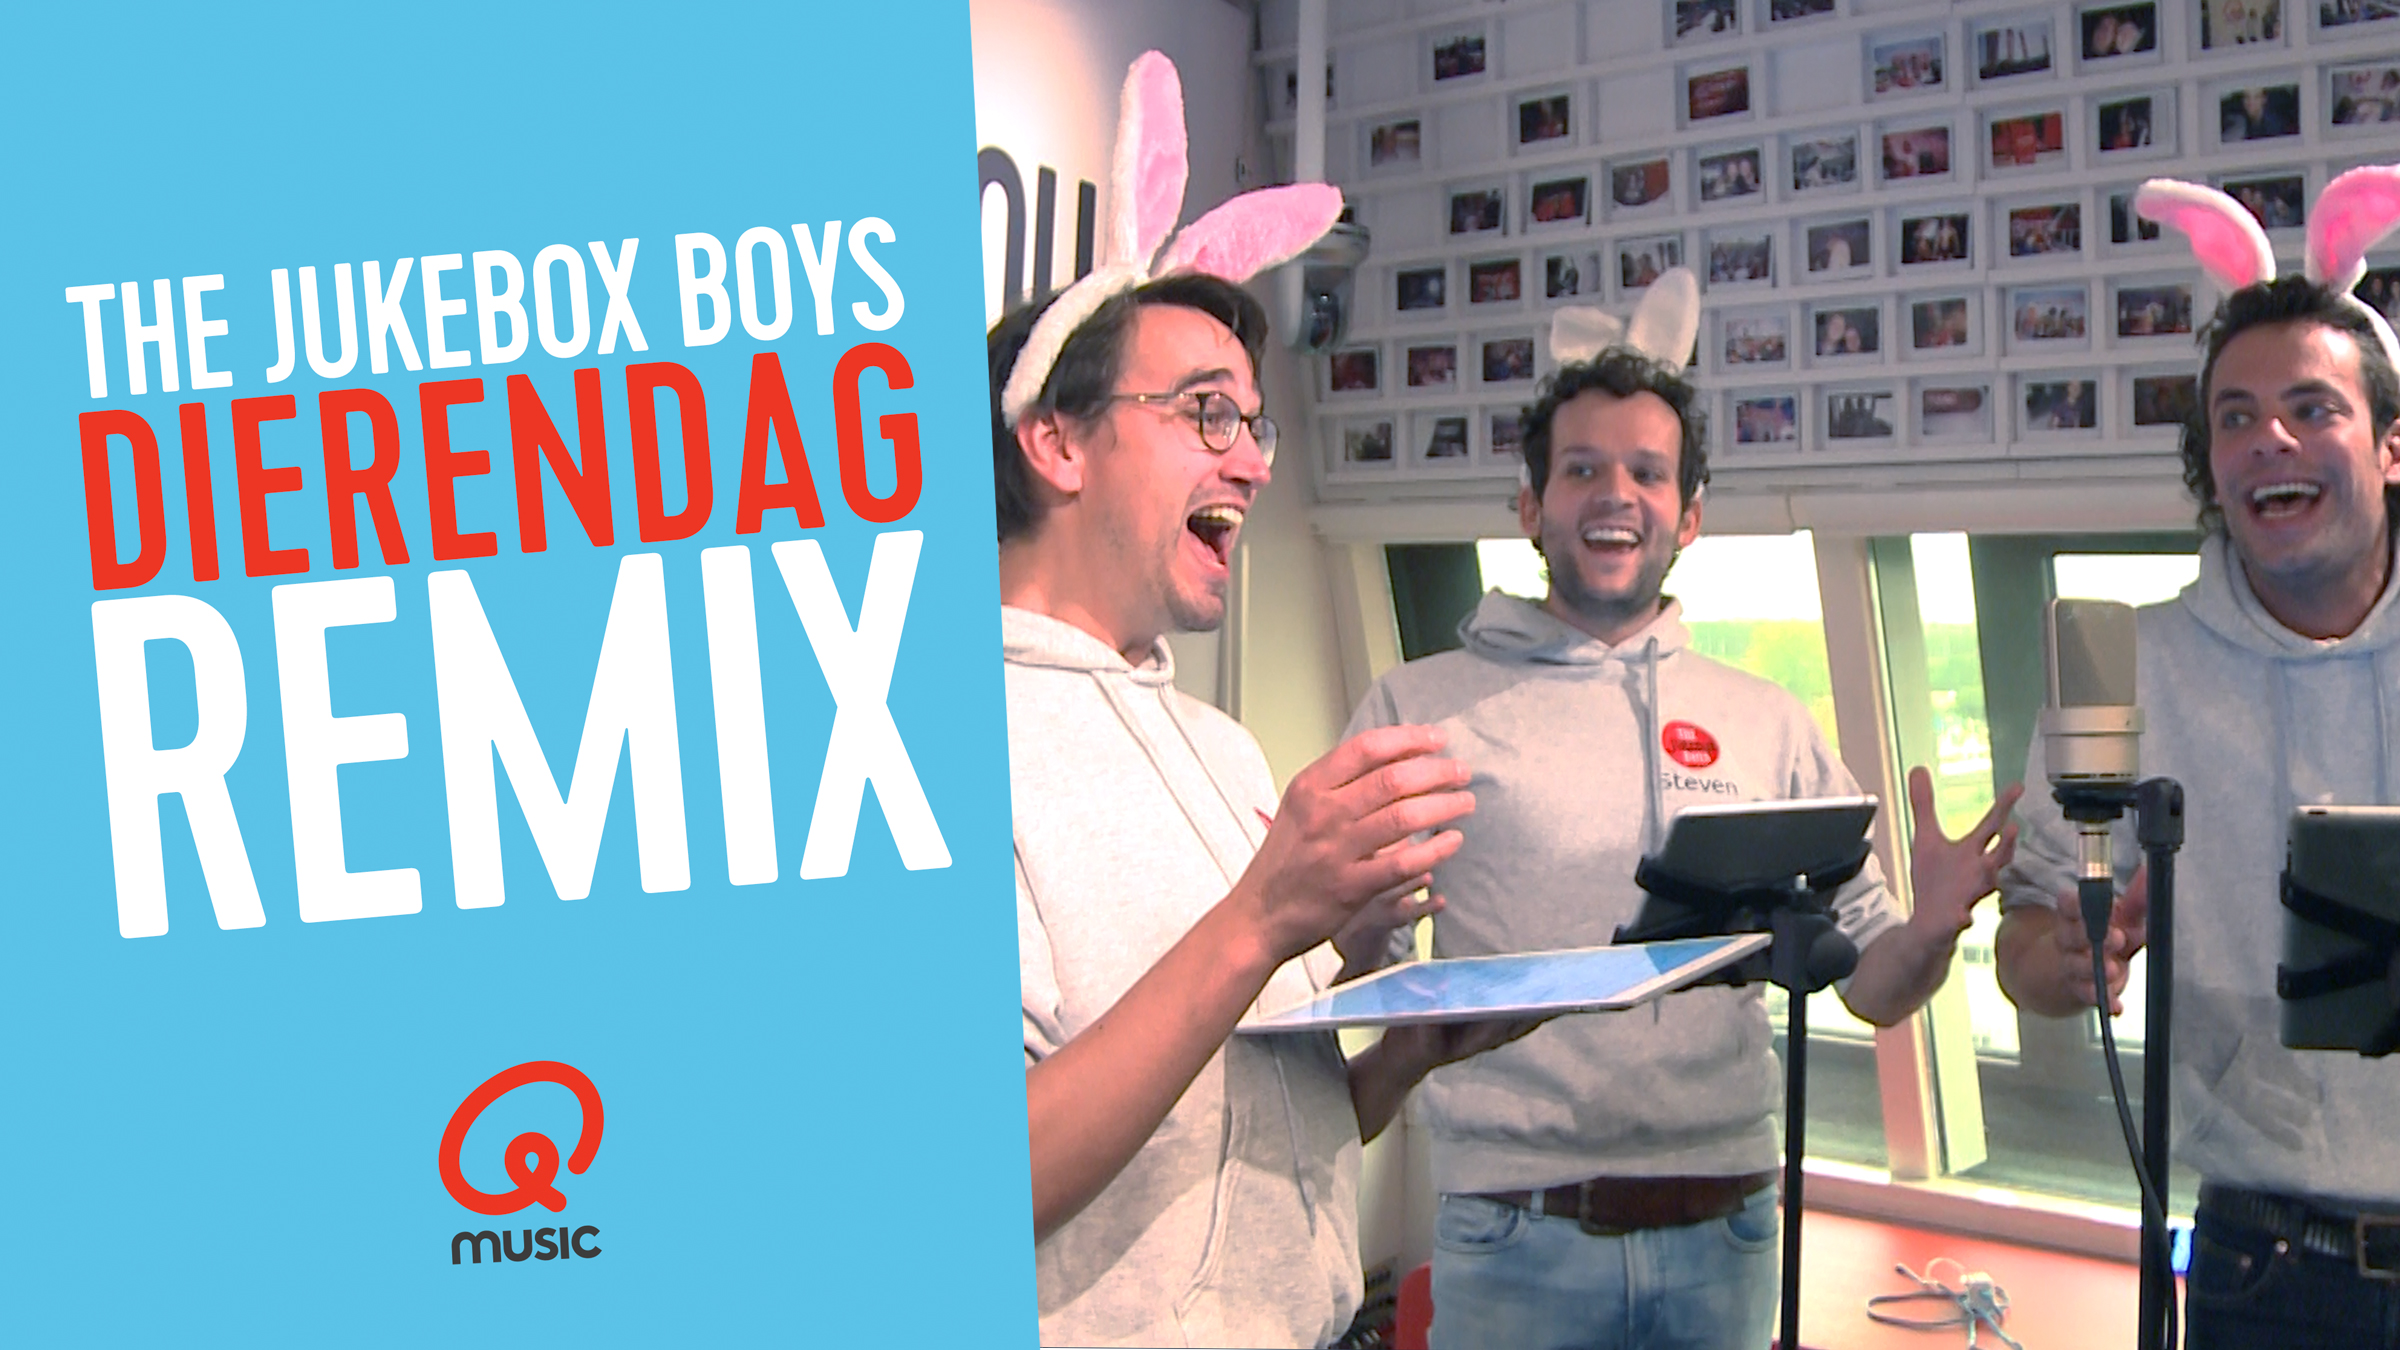 Jukeboxboys teaser2